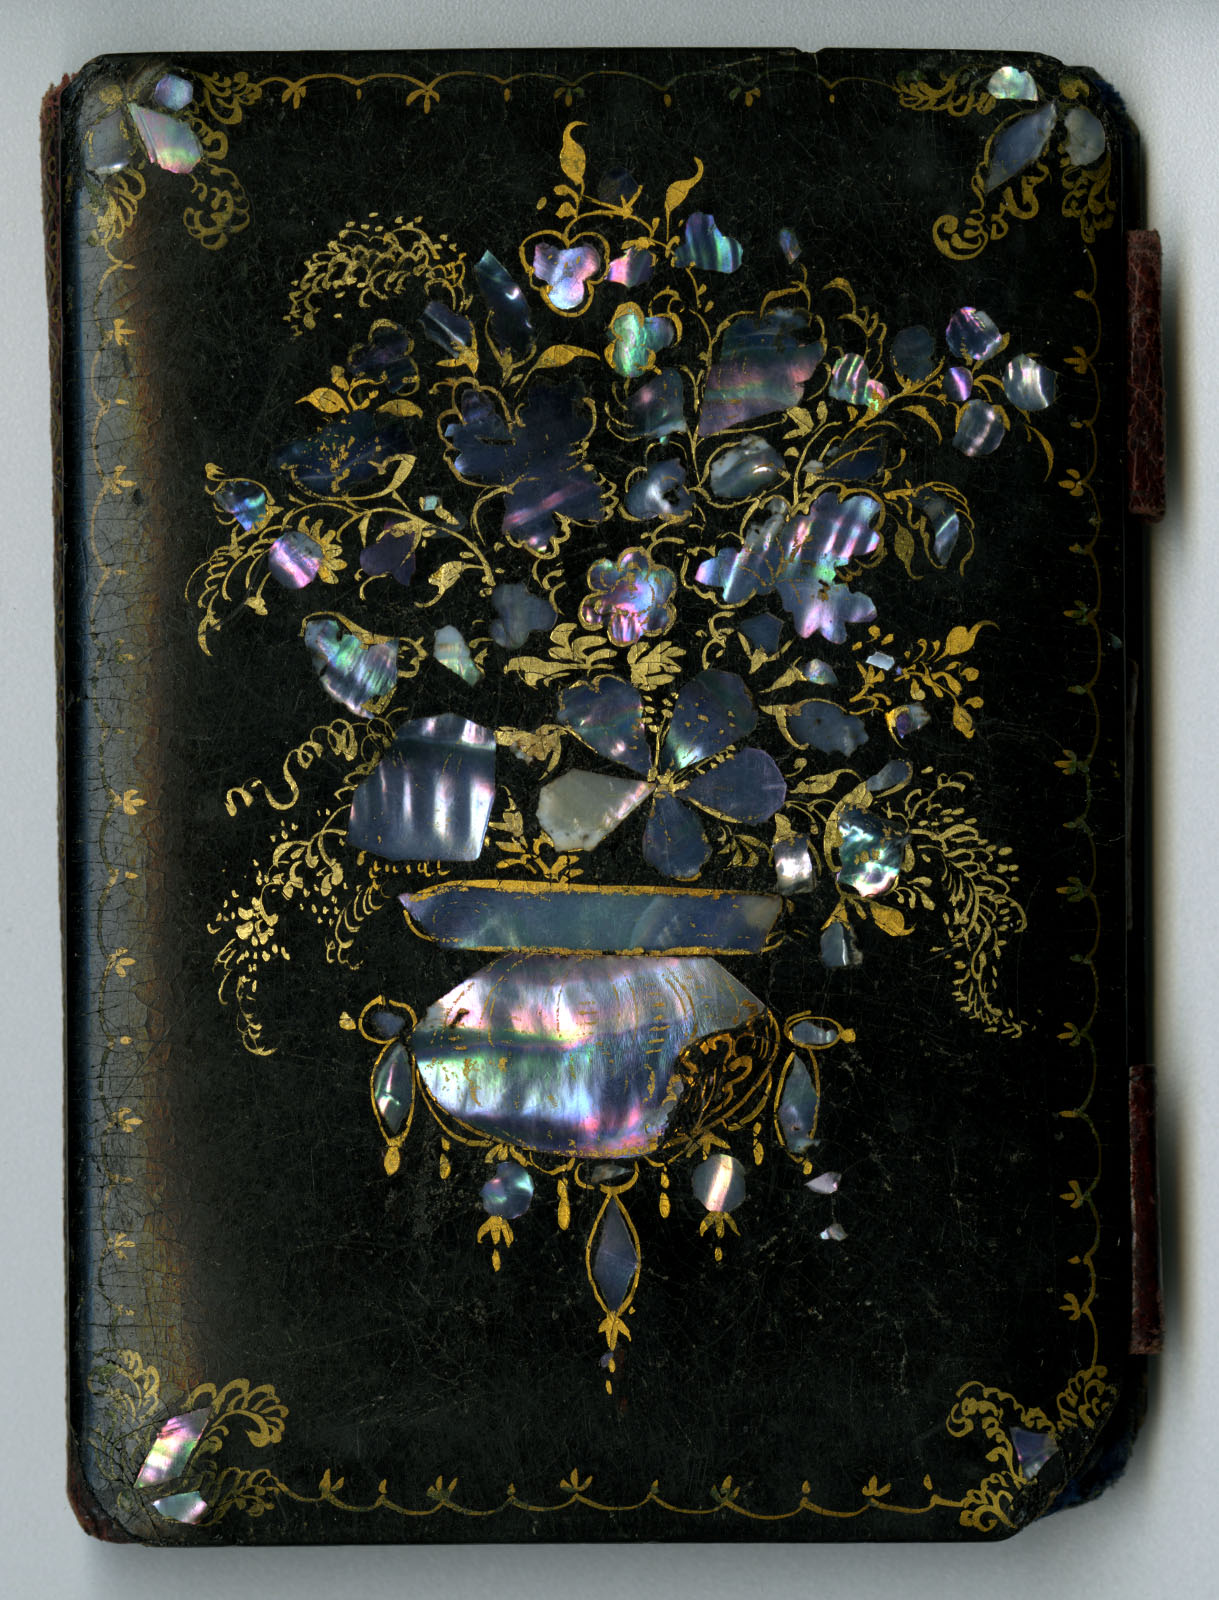 Writing tablet in papier-mâché binding, inlayed with mother-of-pearl, ca. 1850. Gift of Todd and Sharon Pattison.